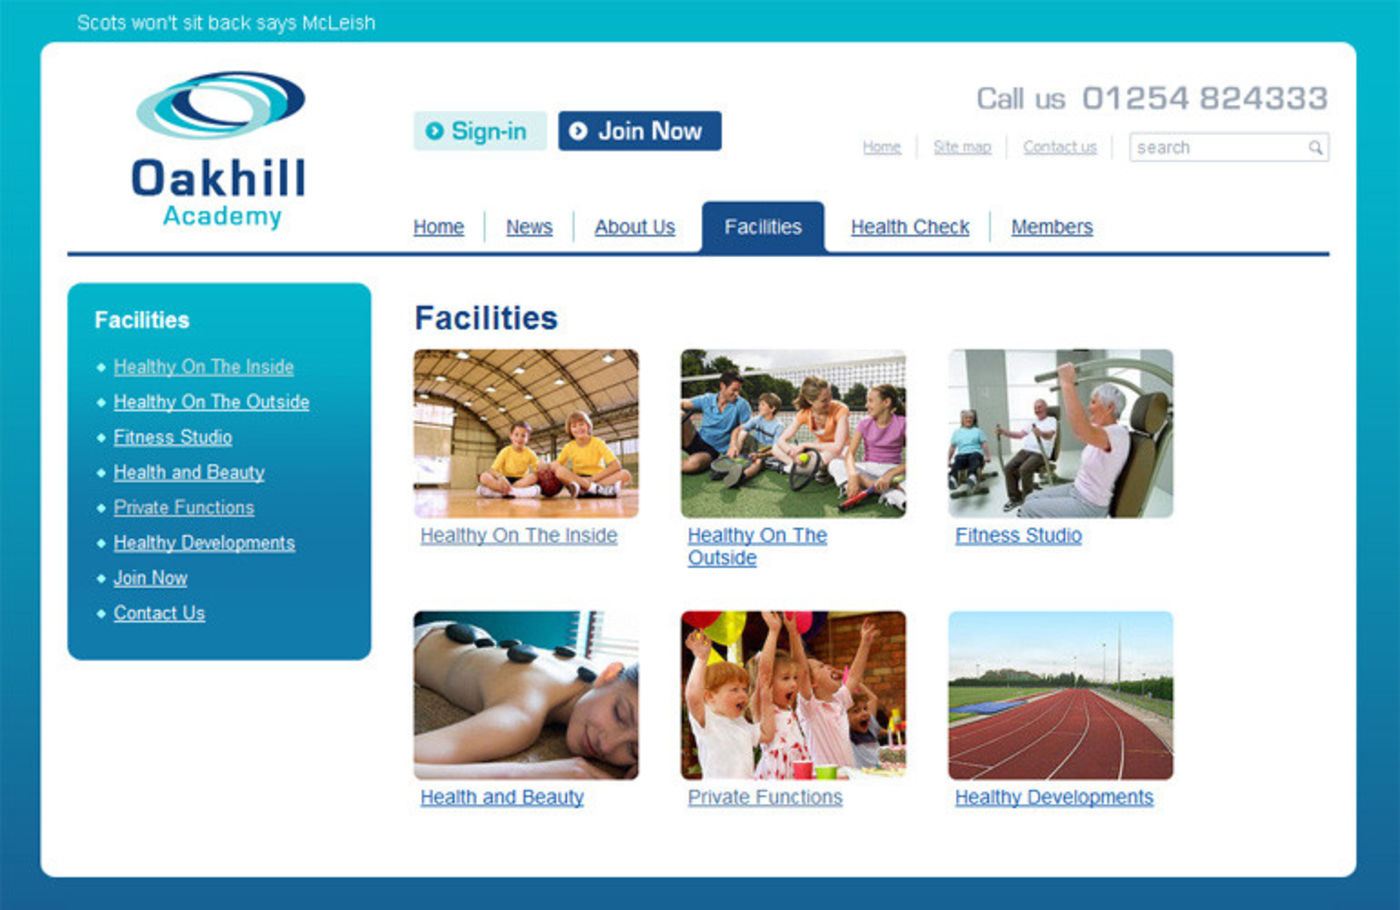 Oakhill Academy Facilities